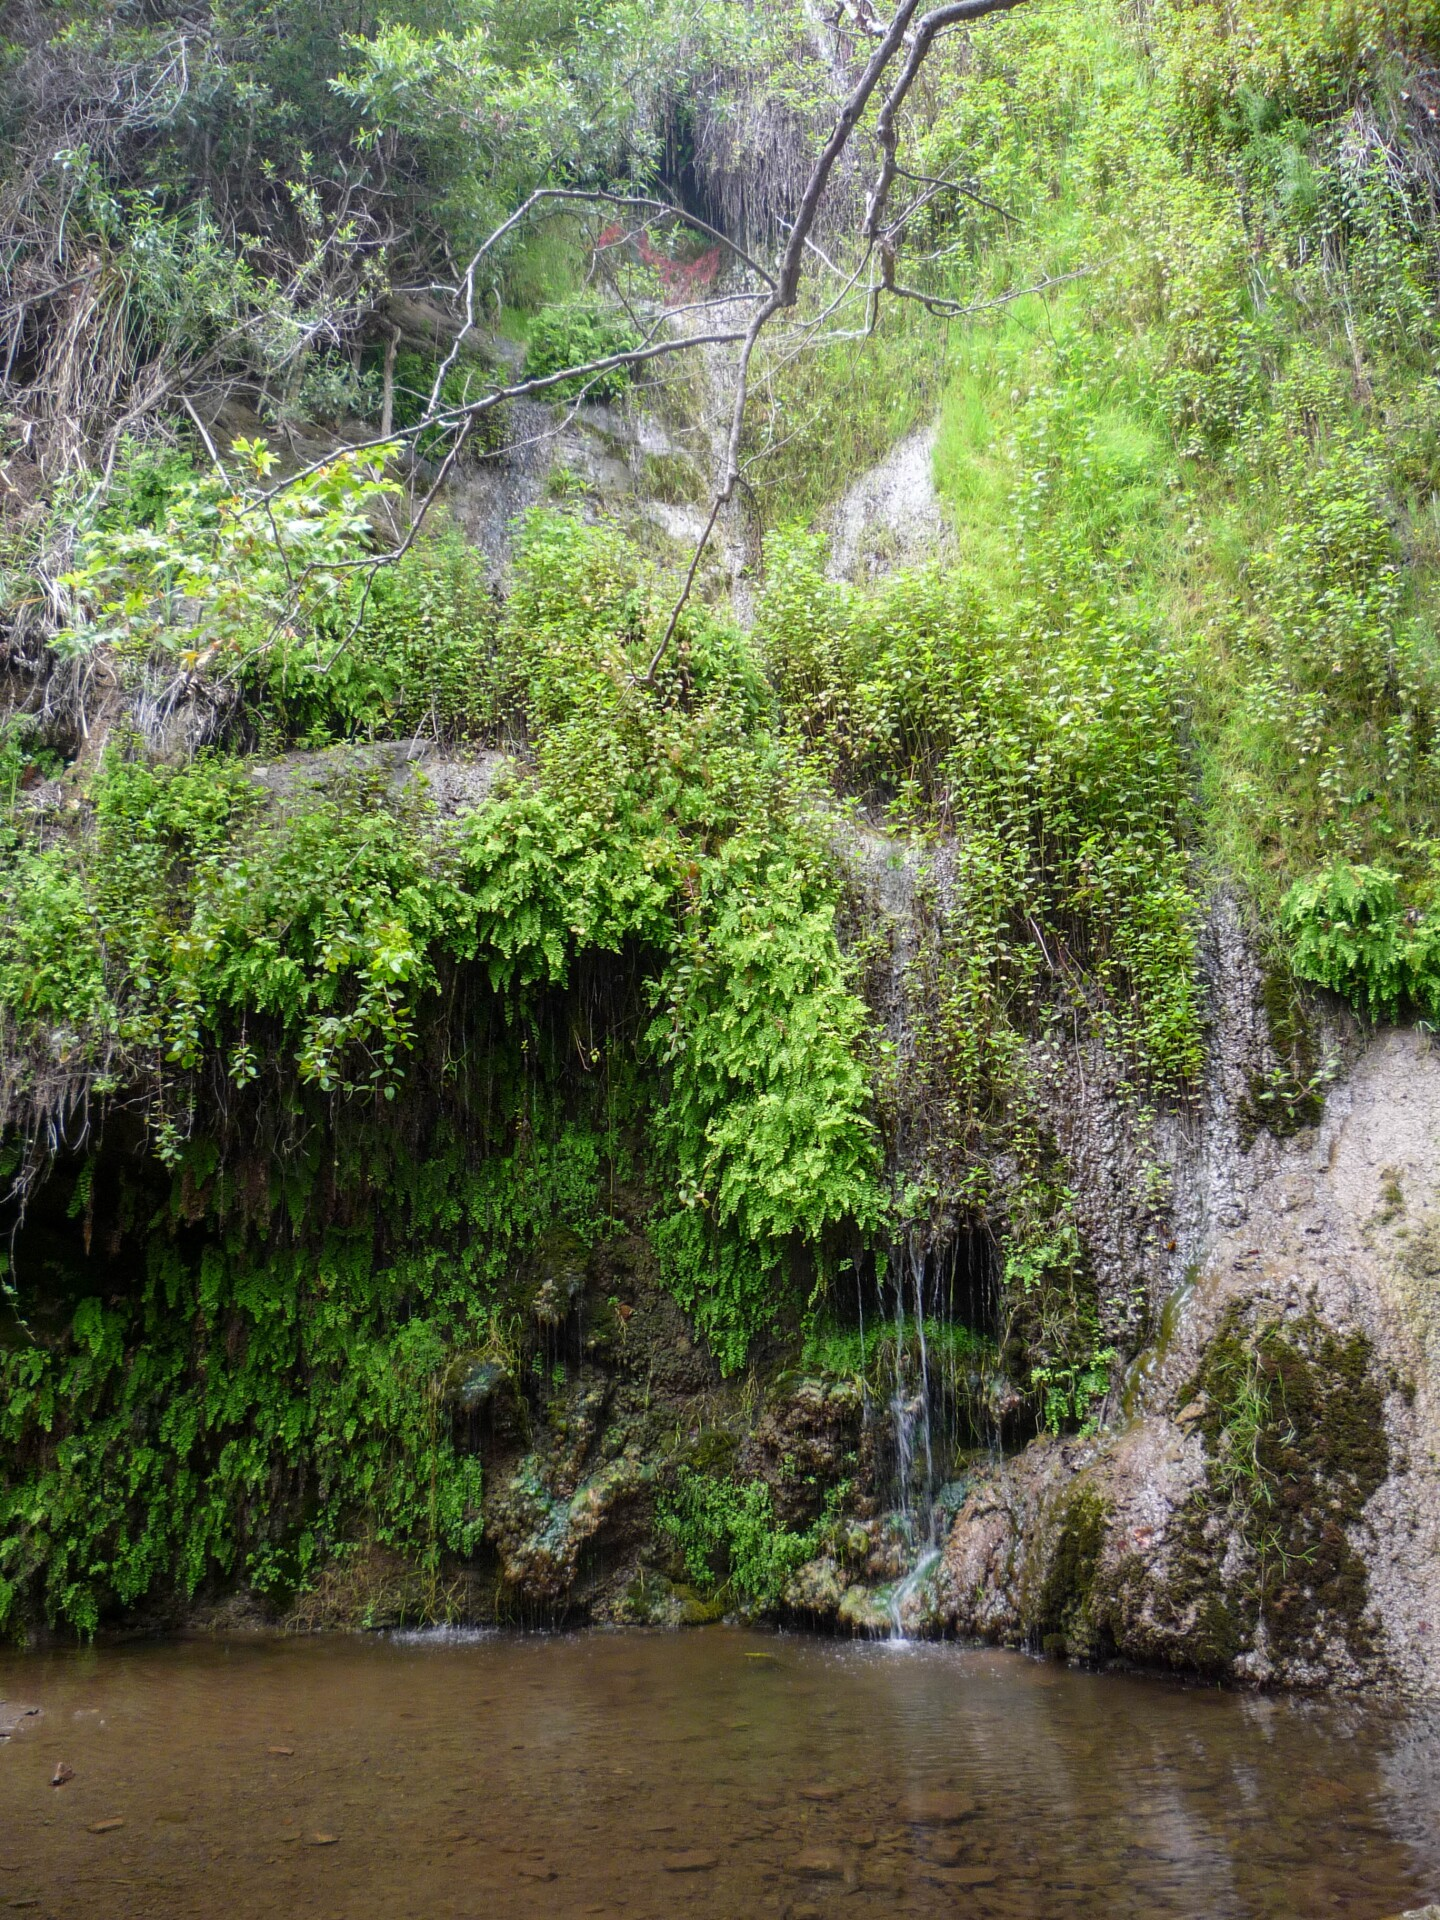 The waterfall at the end of the Escondido Canyon Park and Falls hike in Malibu.